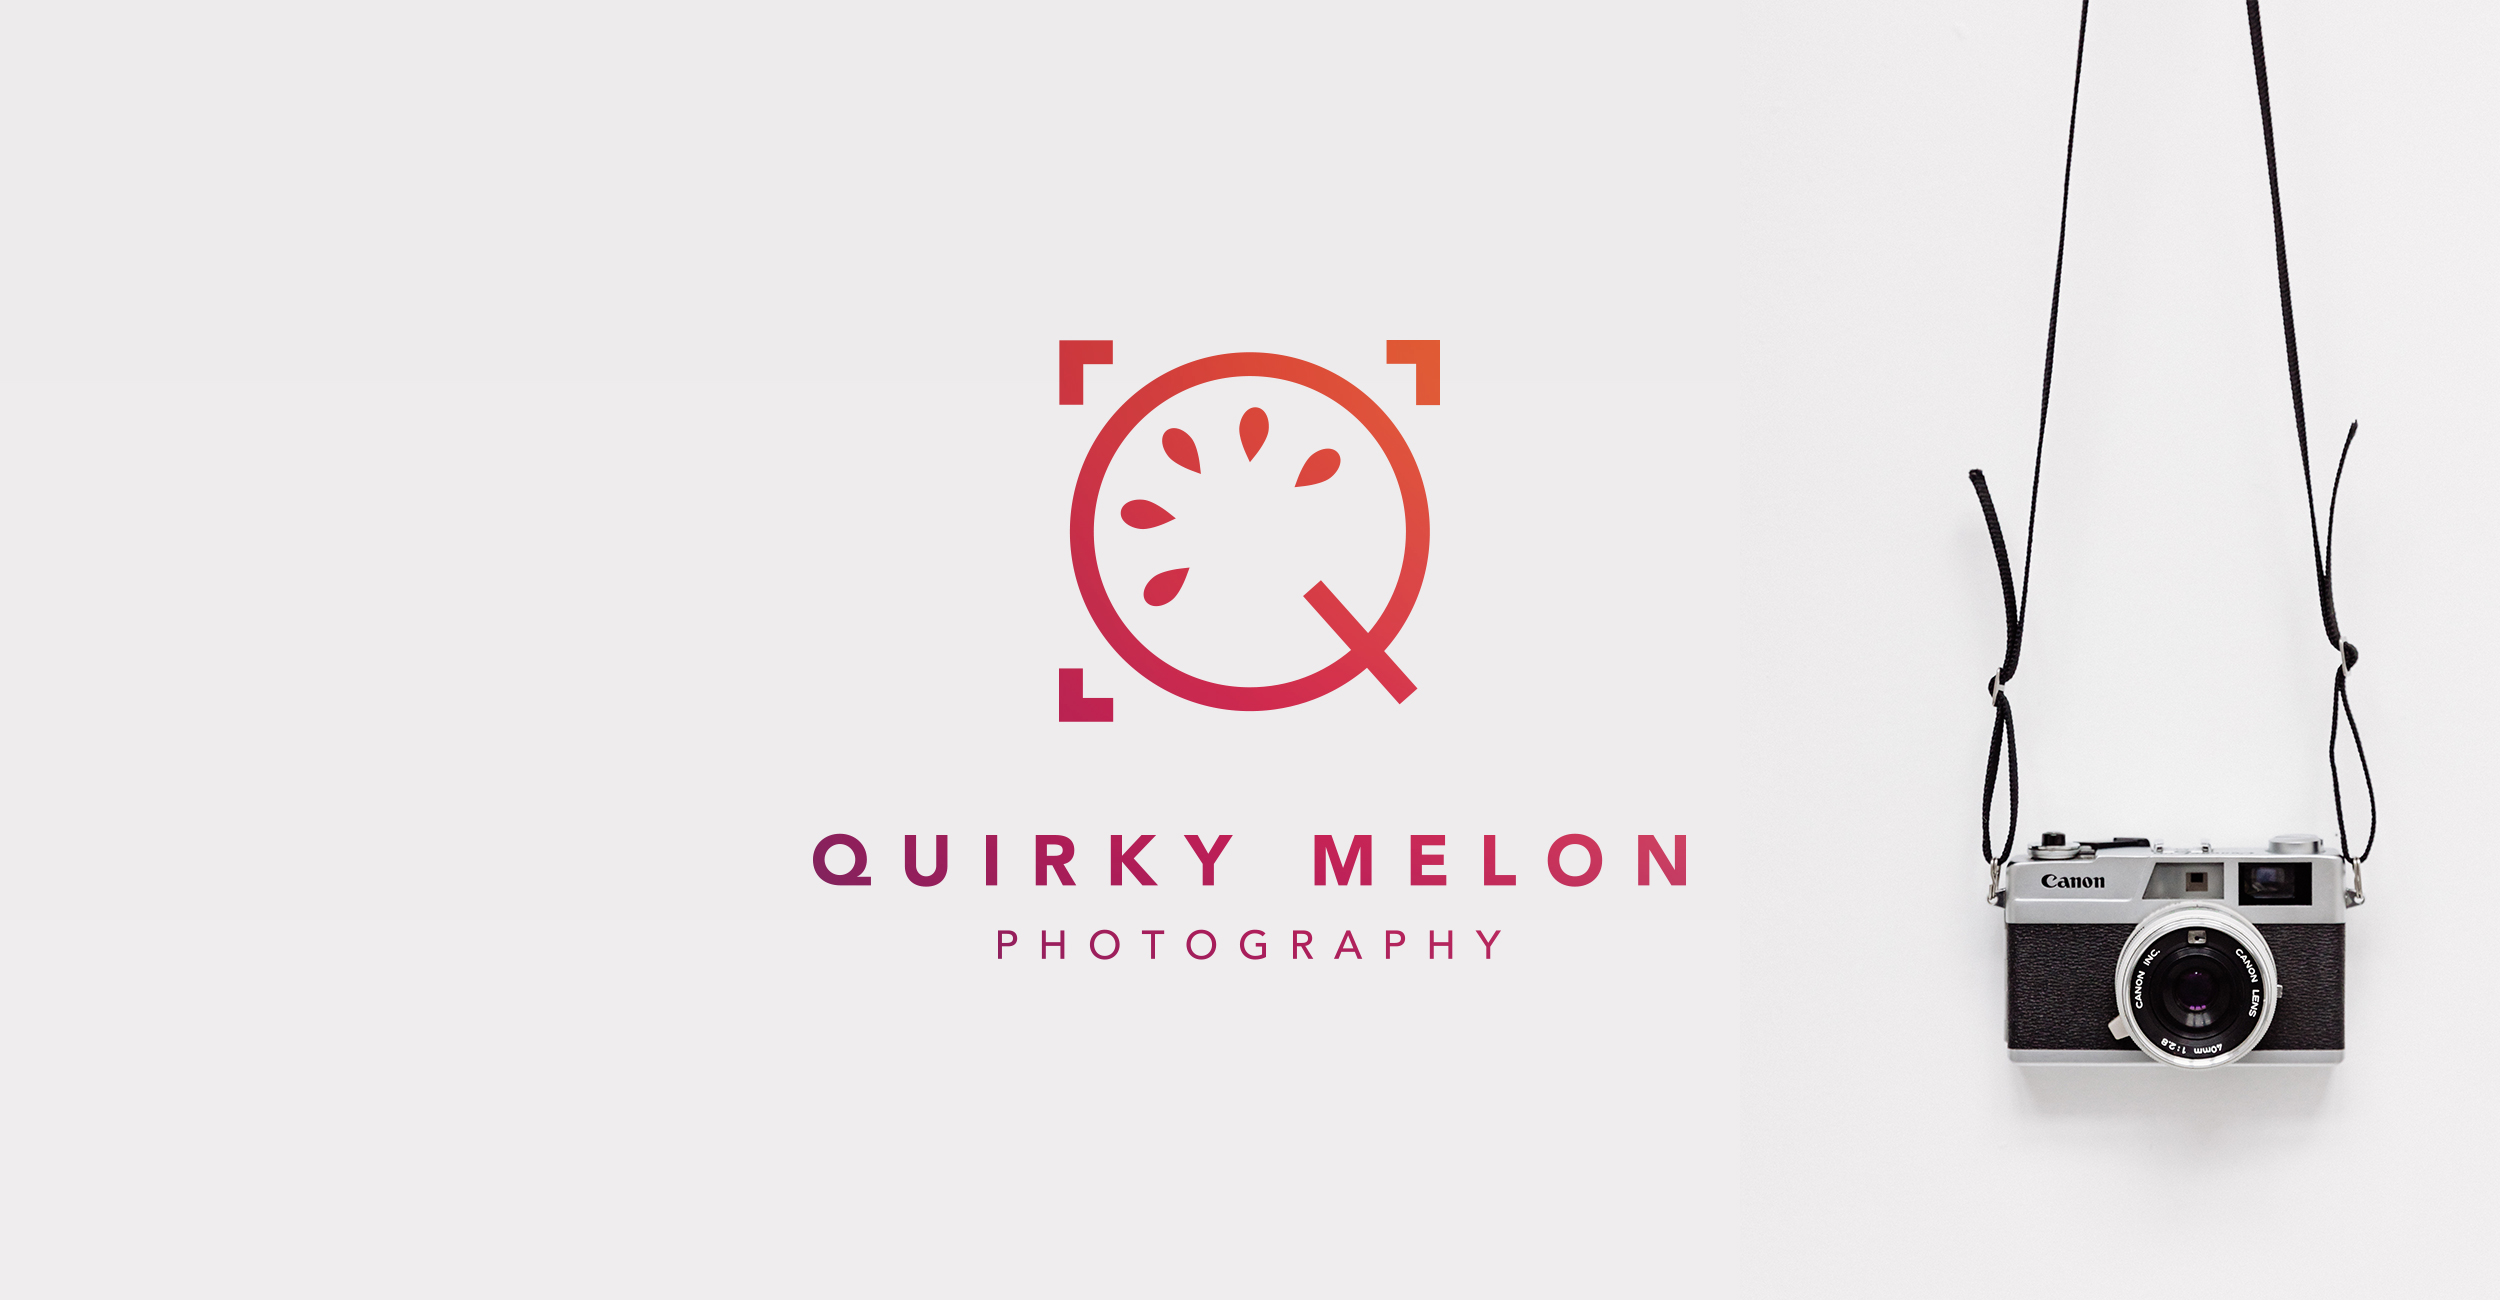 Hall-Creative-Quirky-Melon-Photography-Portfolio-1.jpg